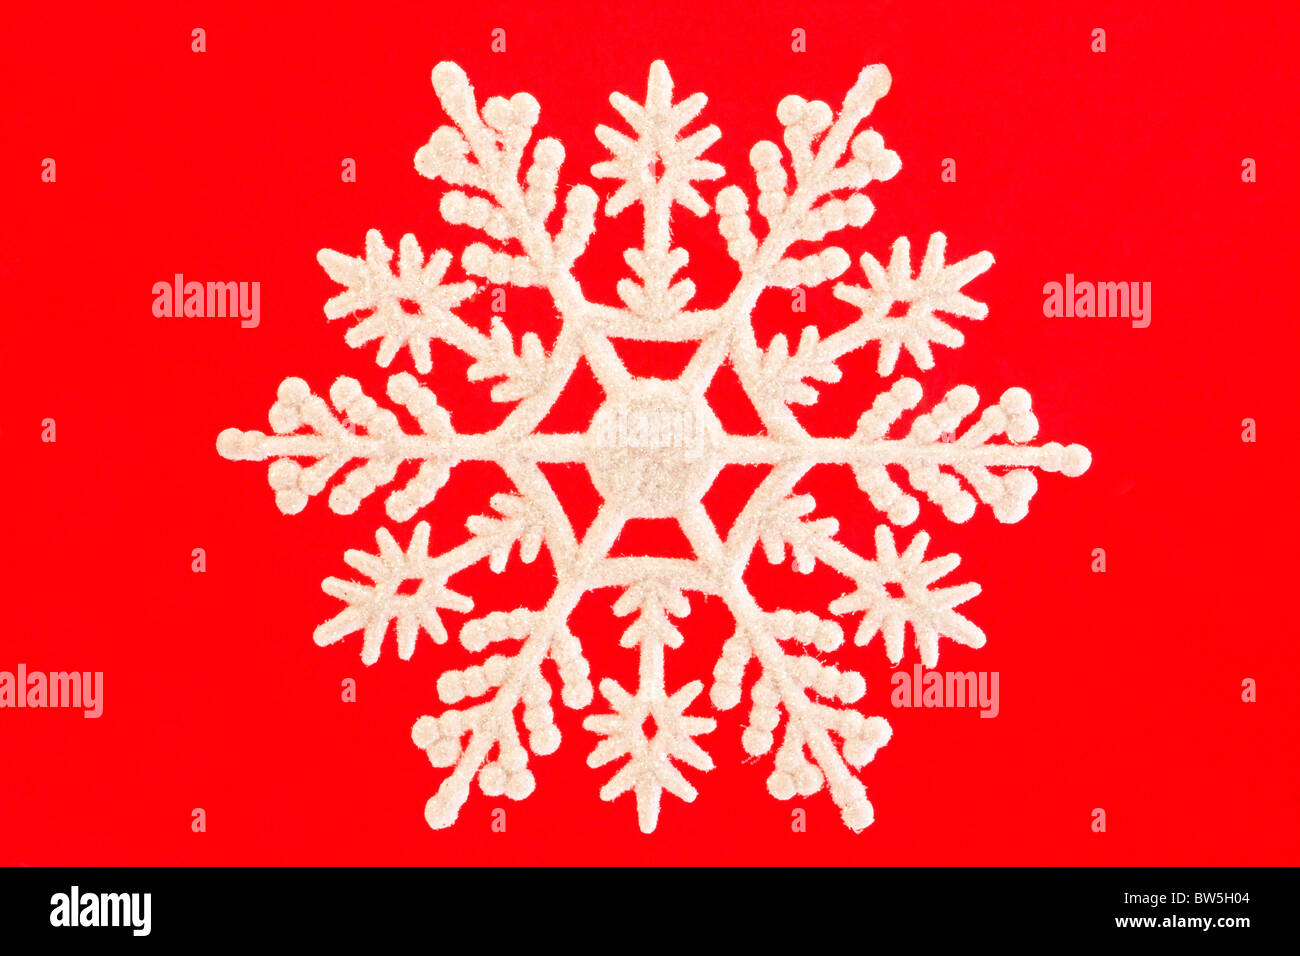 single white snowflake isolated over red - Stock Image